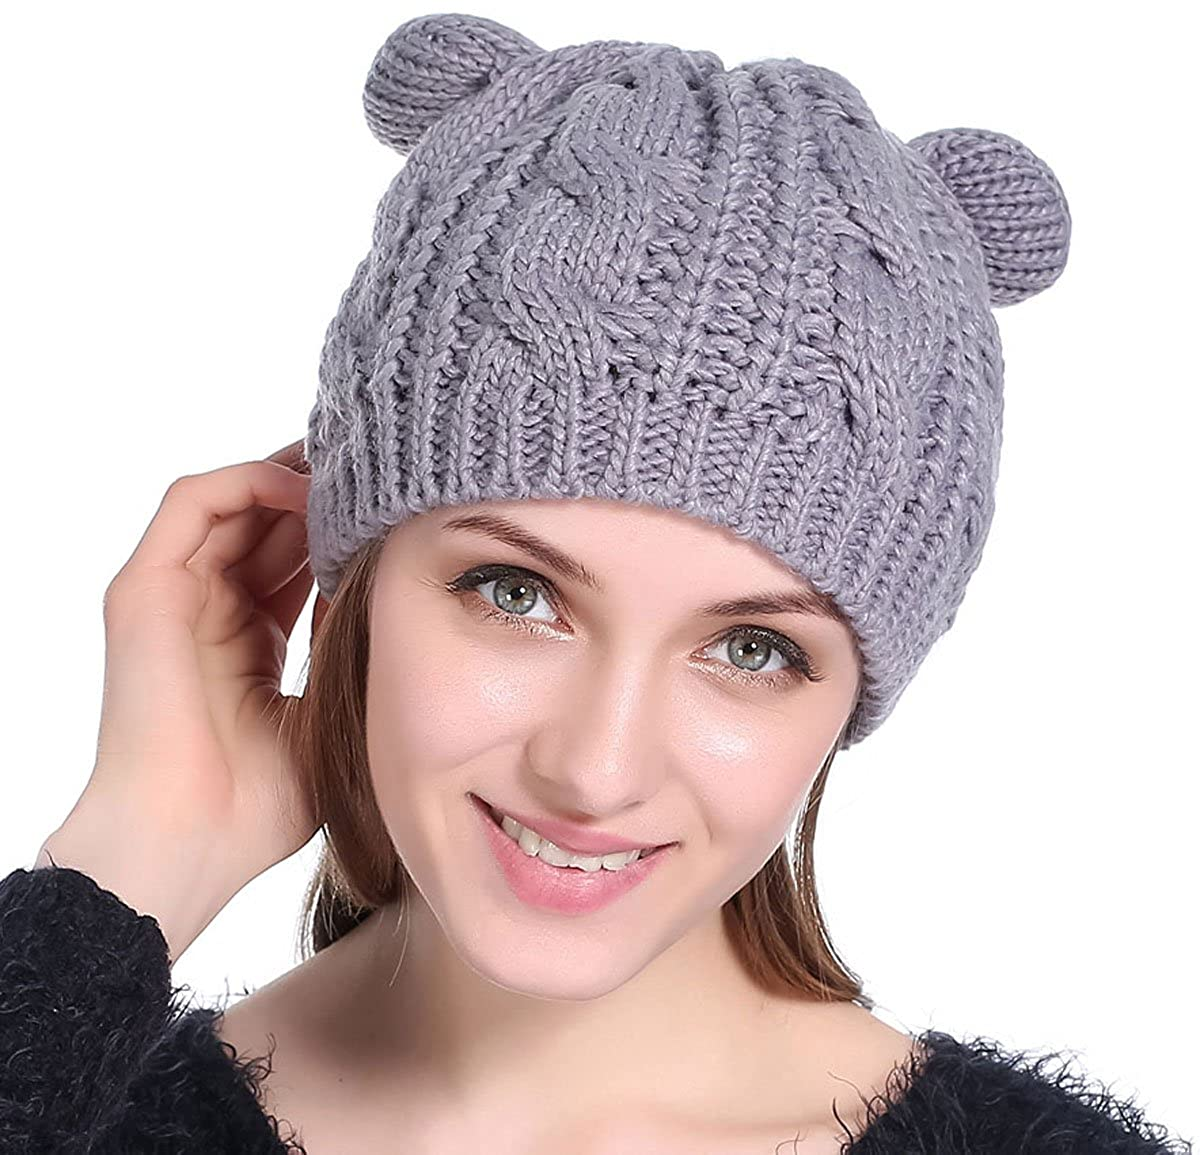 Womens Winter Thick Cable Knit Beanie Hat Cat Ear Crochet Braided Knit Caps e2289cda9db